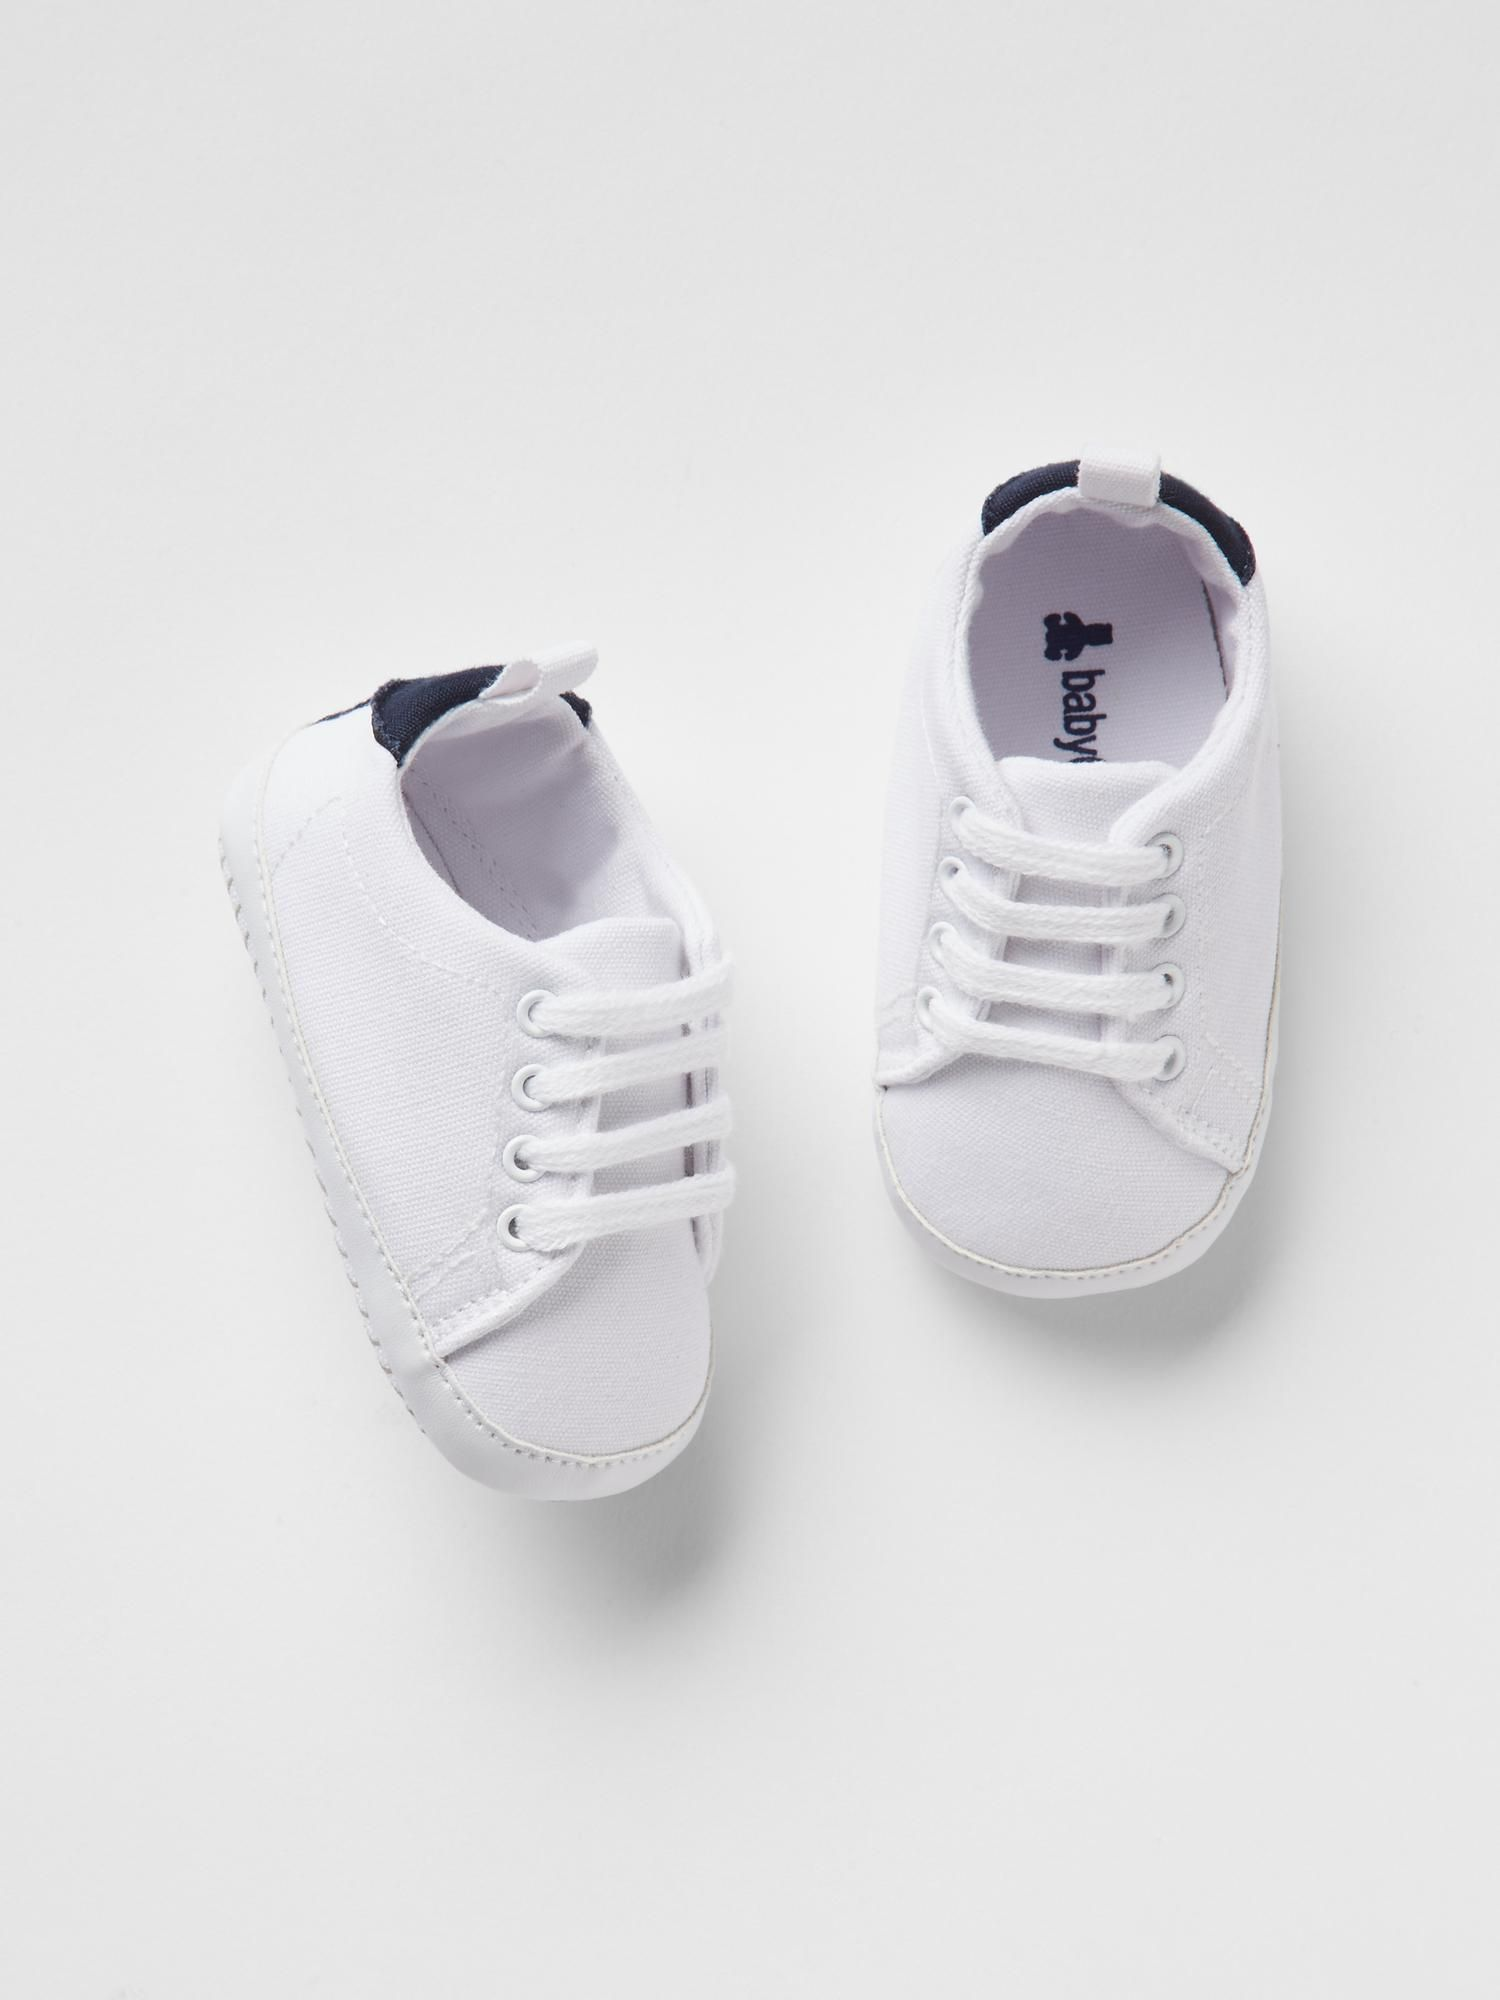 Lace-up sneakers | Gap Canada - Free Shipping on $50 ...